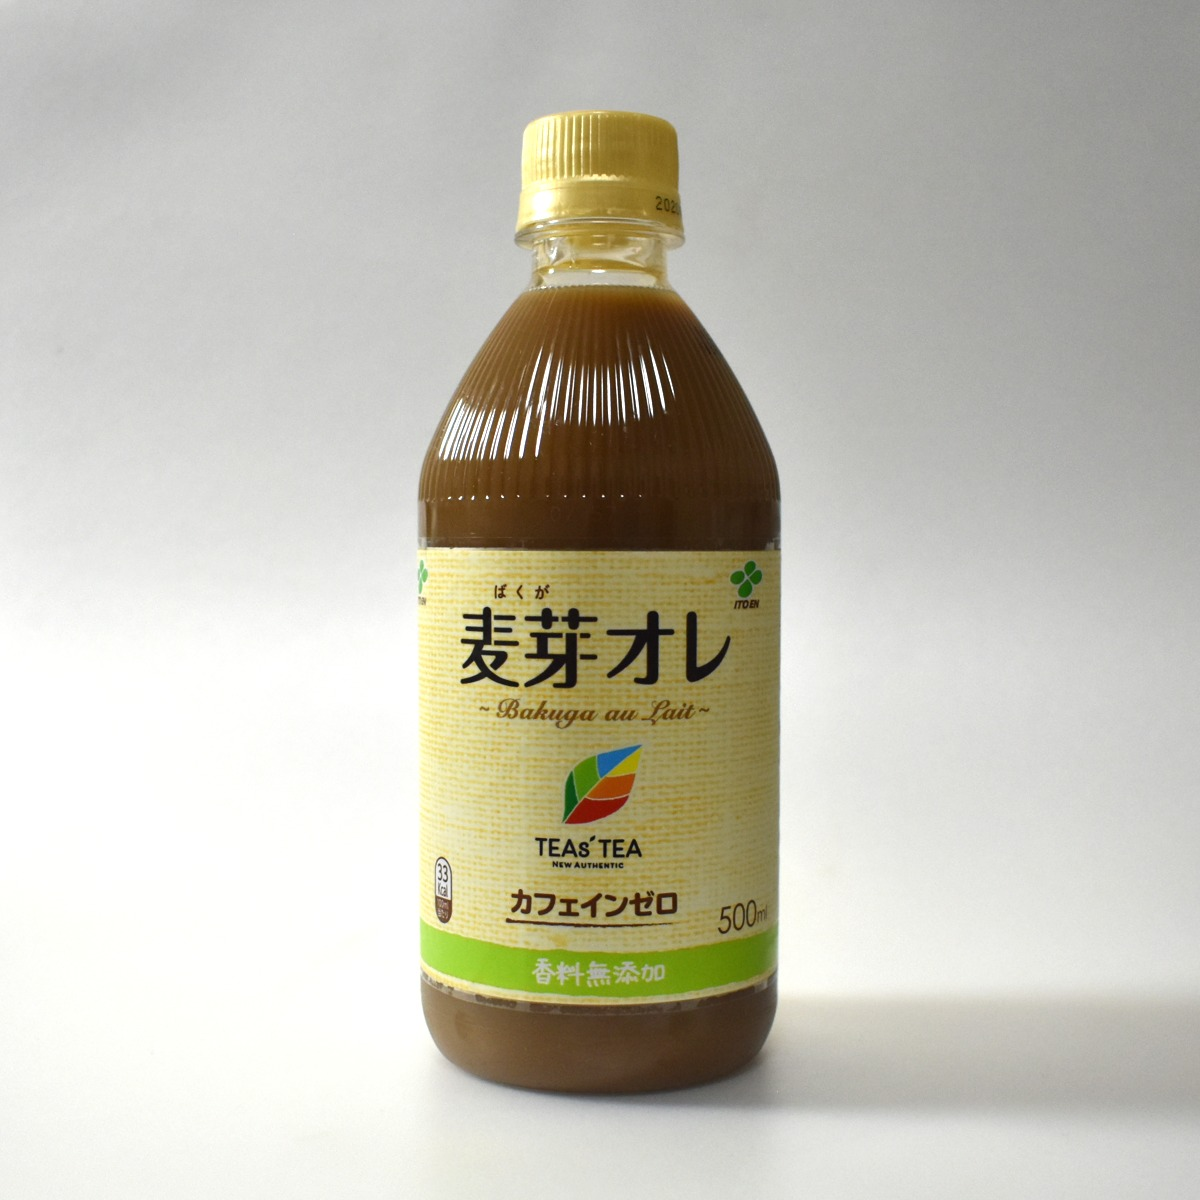 TEAs' TEA NEW AUTHENTIC 麦芽オレ